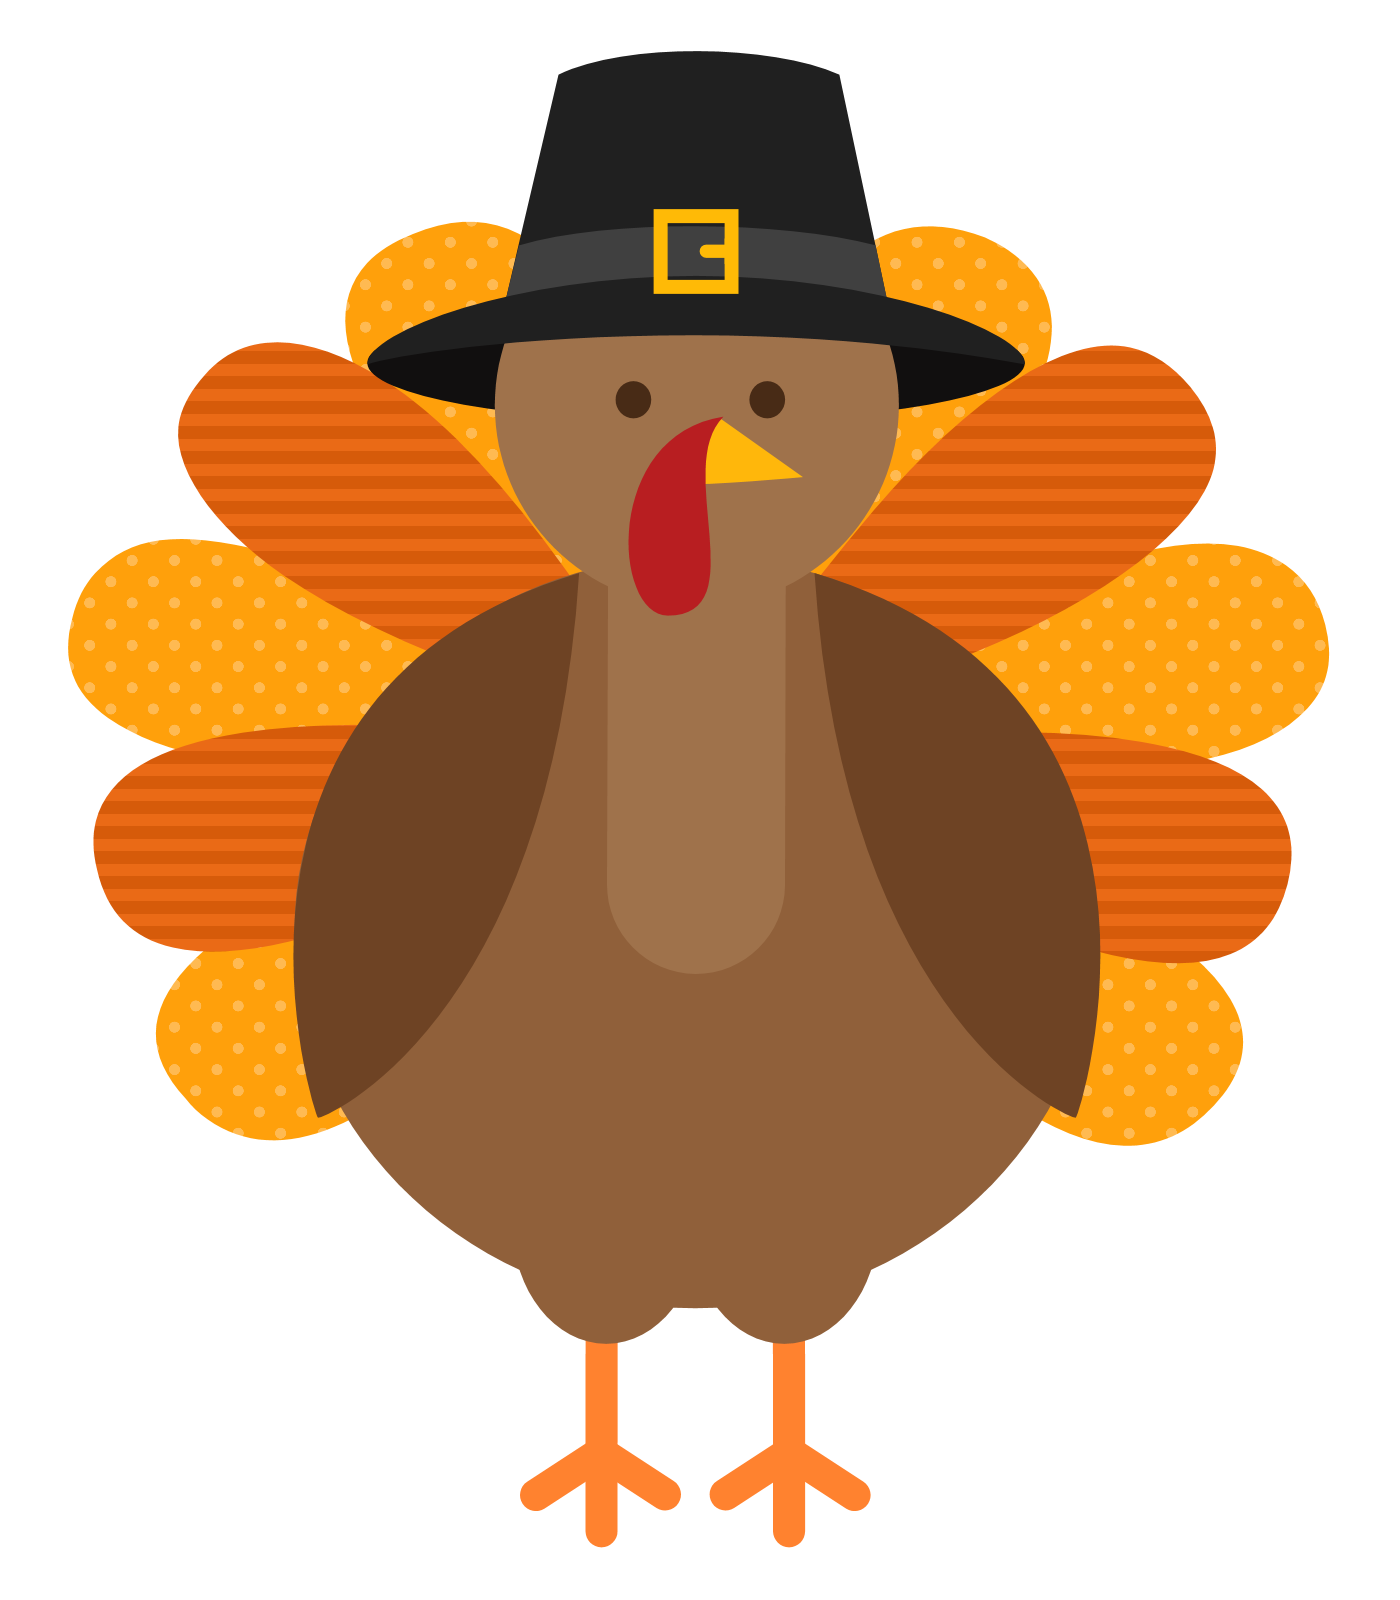 Clipart thanksgiving images picture download Character day in prek clipart - ClipartFox picture download